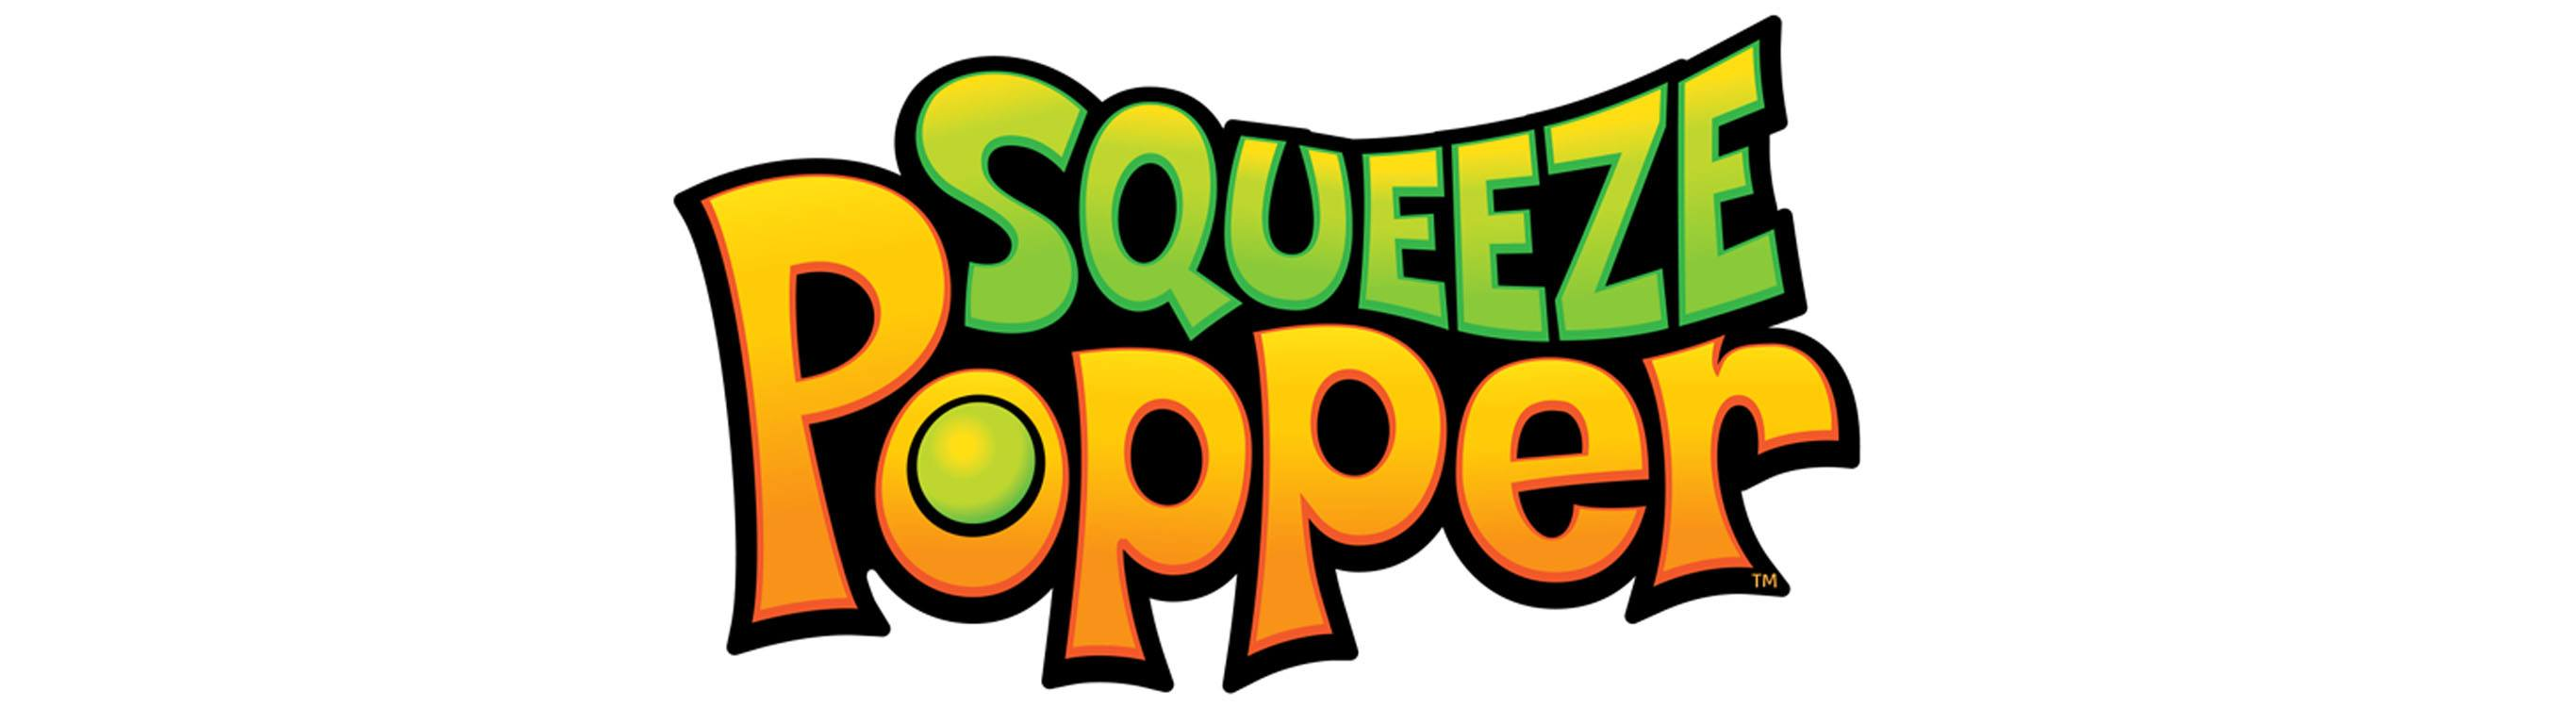 Squeeze Poppers-